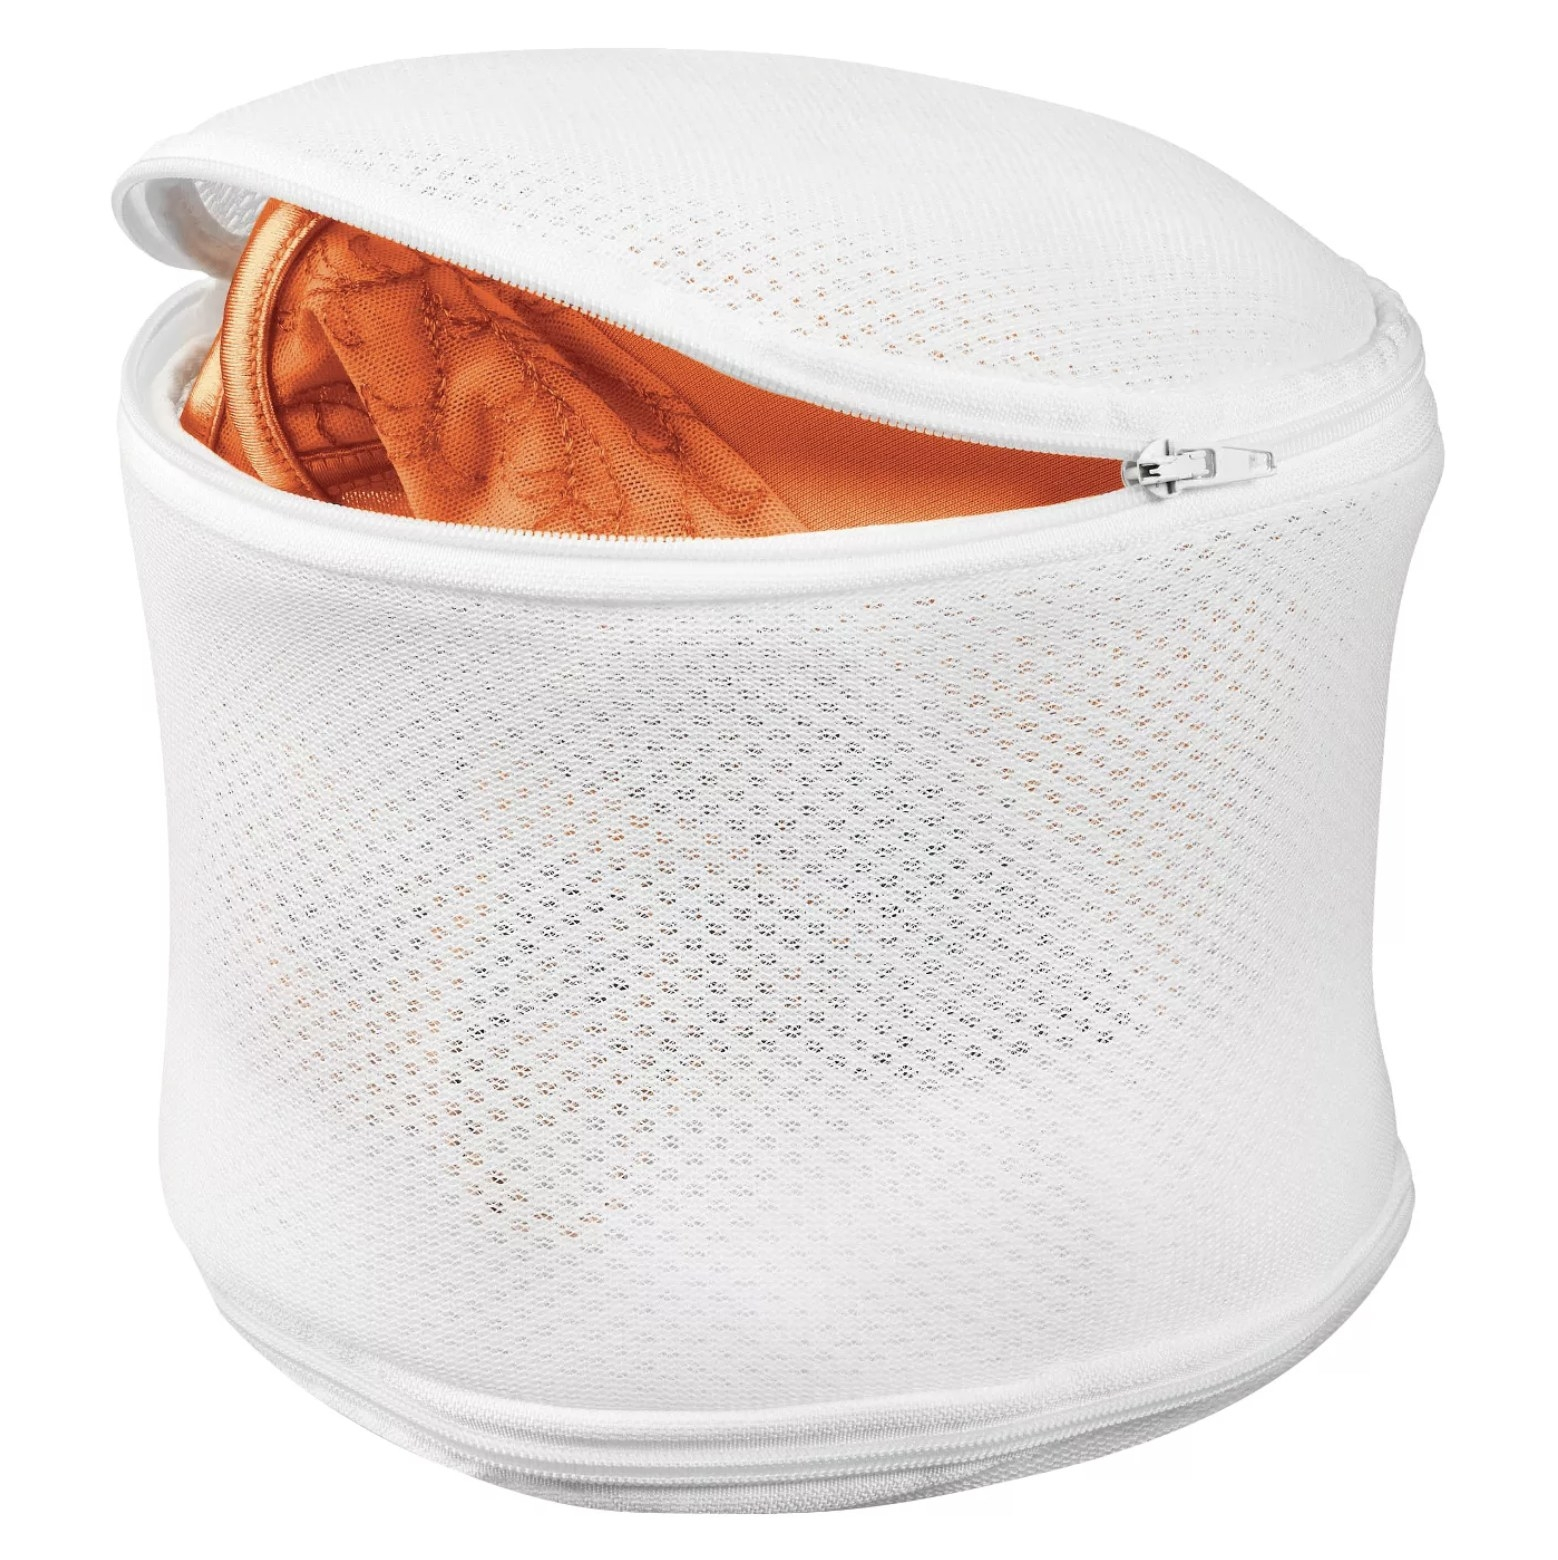 The mesh wash bag